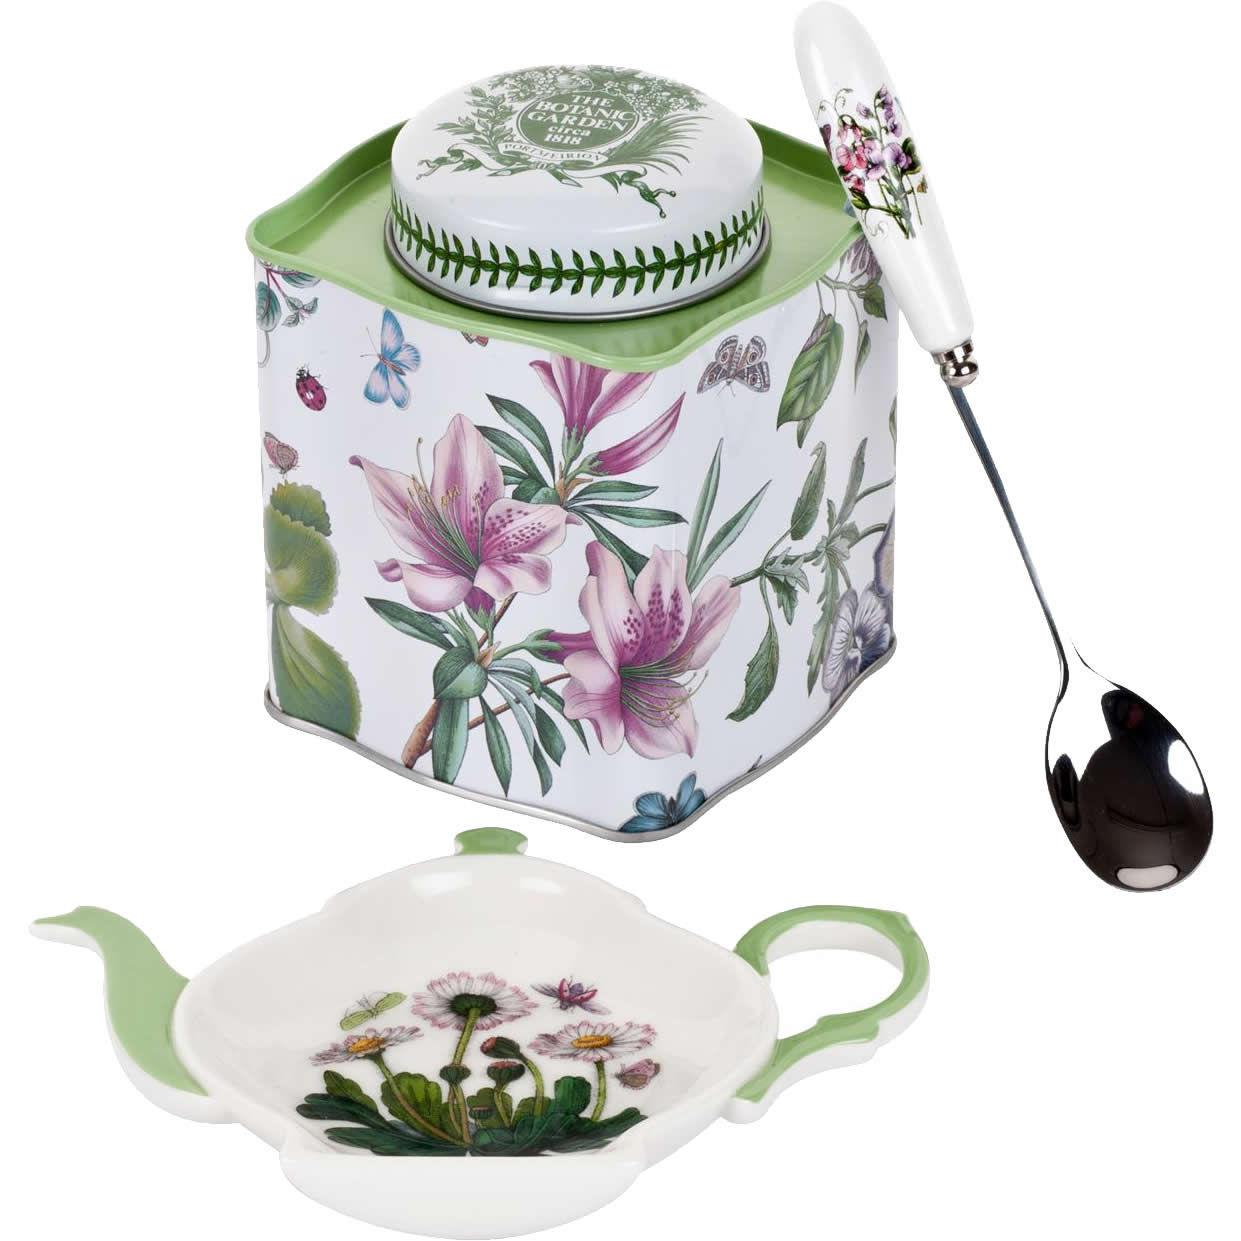 Portmeirion Botanic Garden Tea Caddy Set Louis Potts